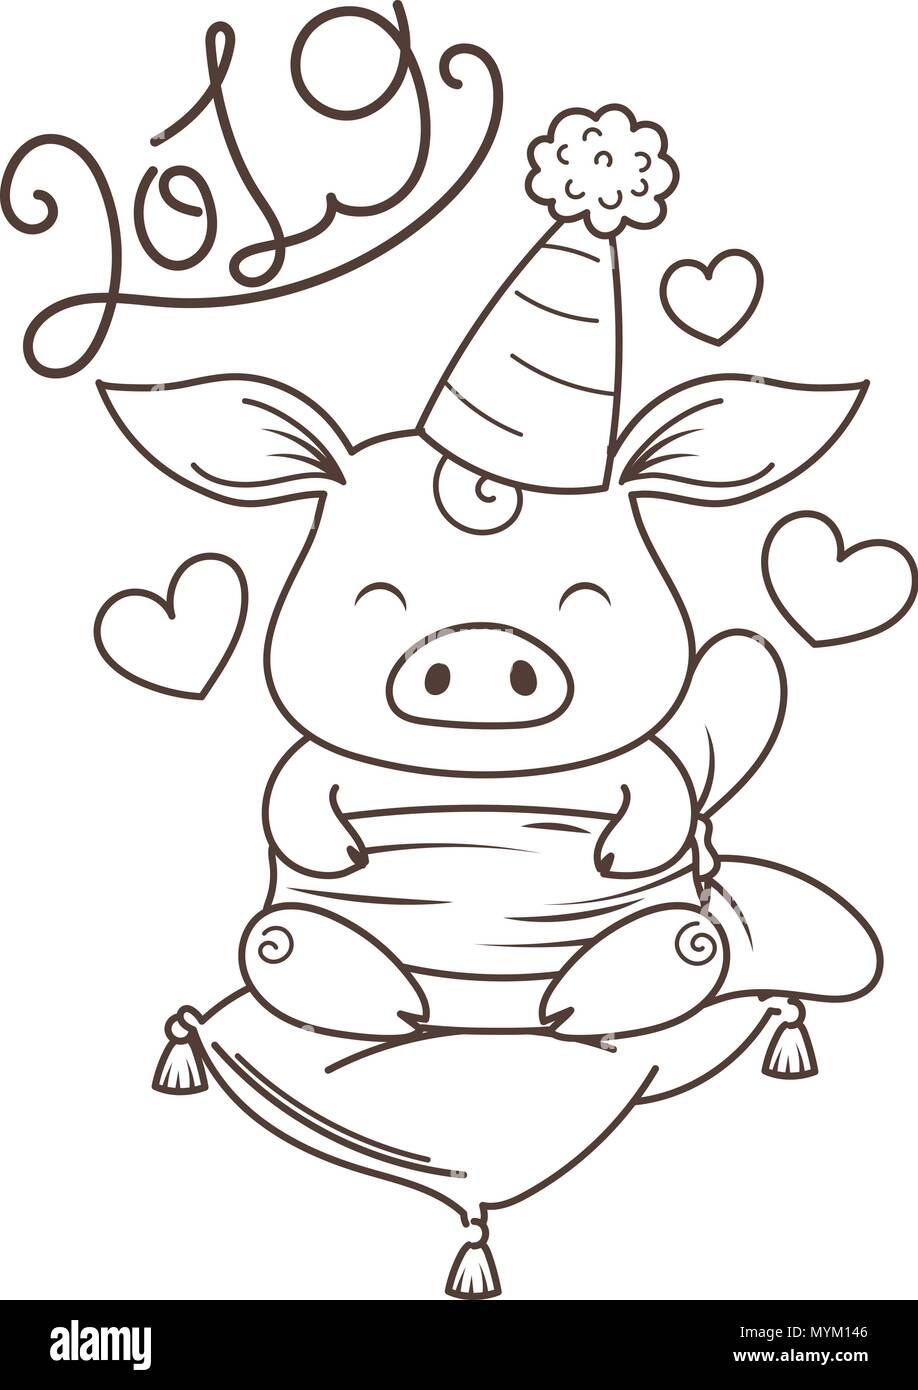 Cartoon Illustration Little Pig Sitting Imágenes De Stock & Cartoon ...